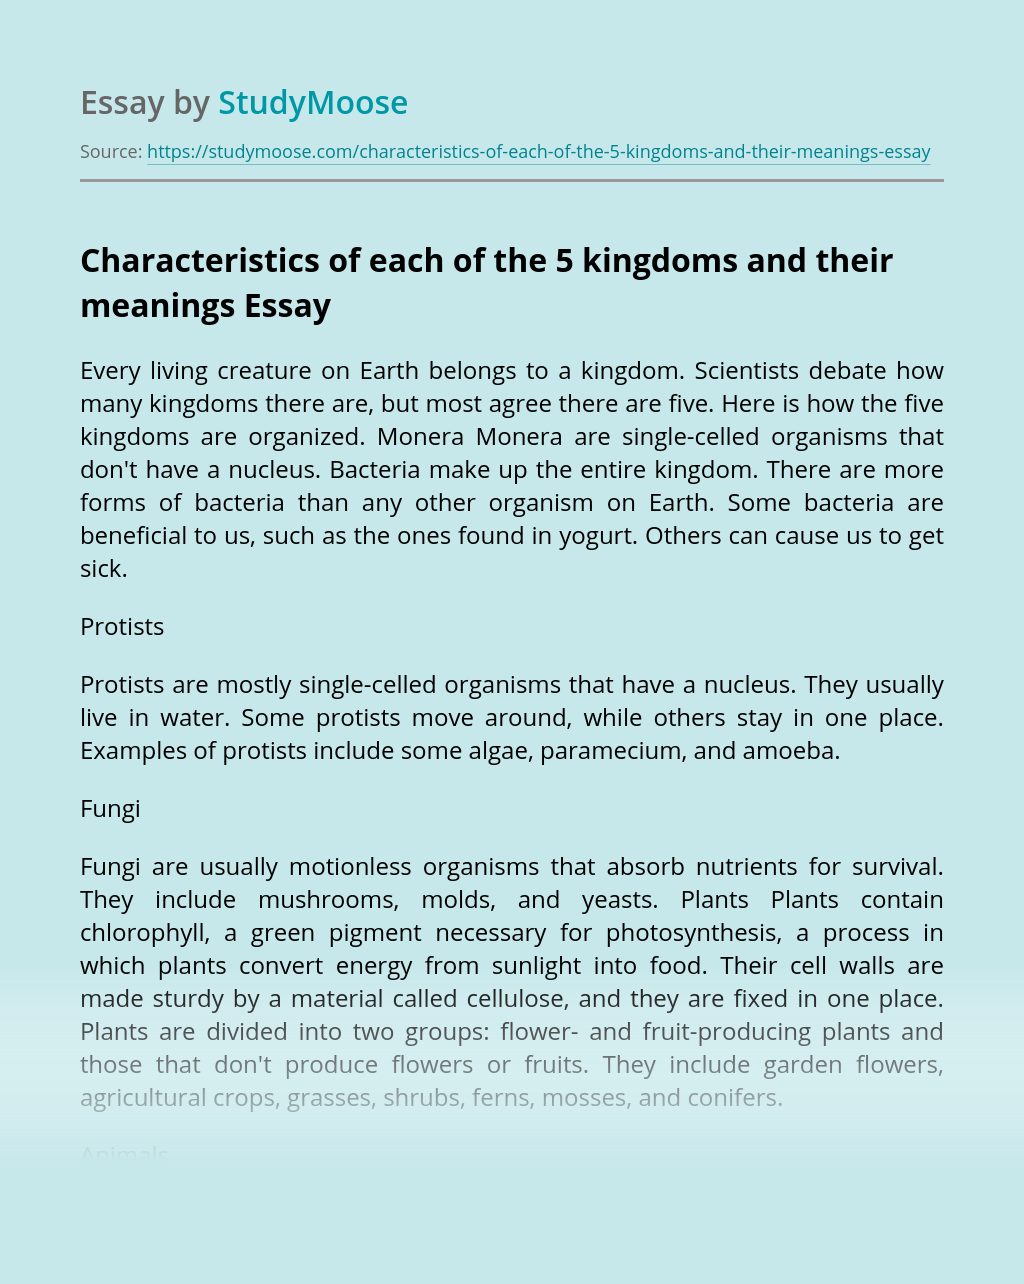 Characteristics of each of the 5 kingdoms and their meanings